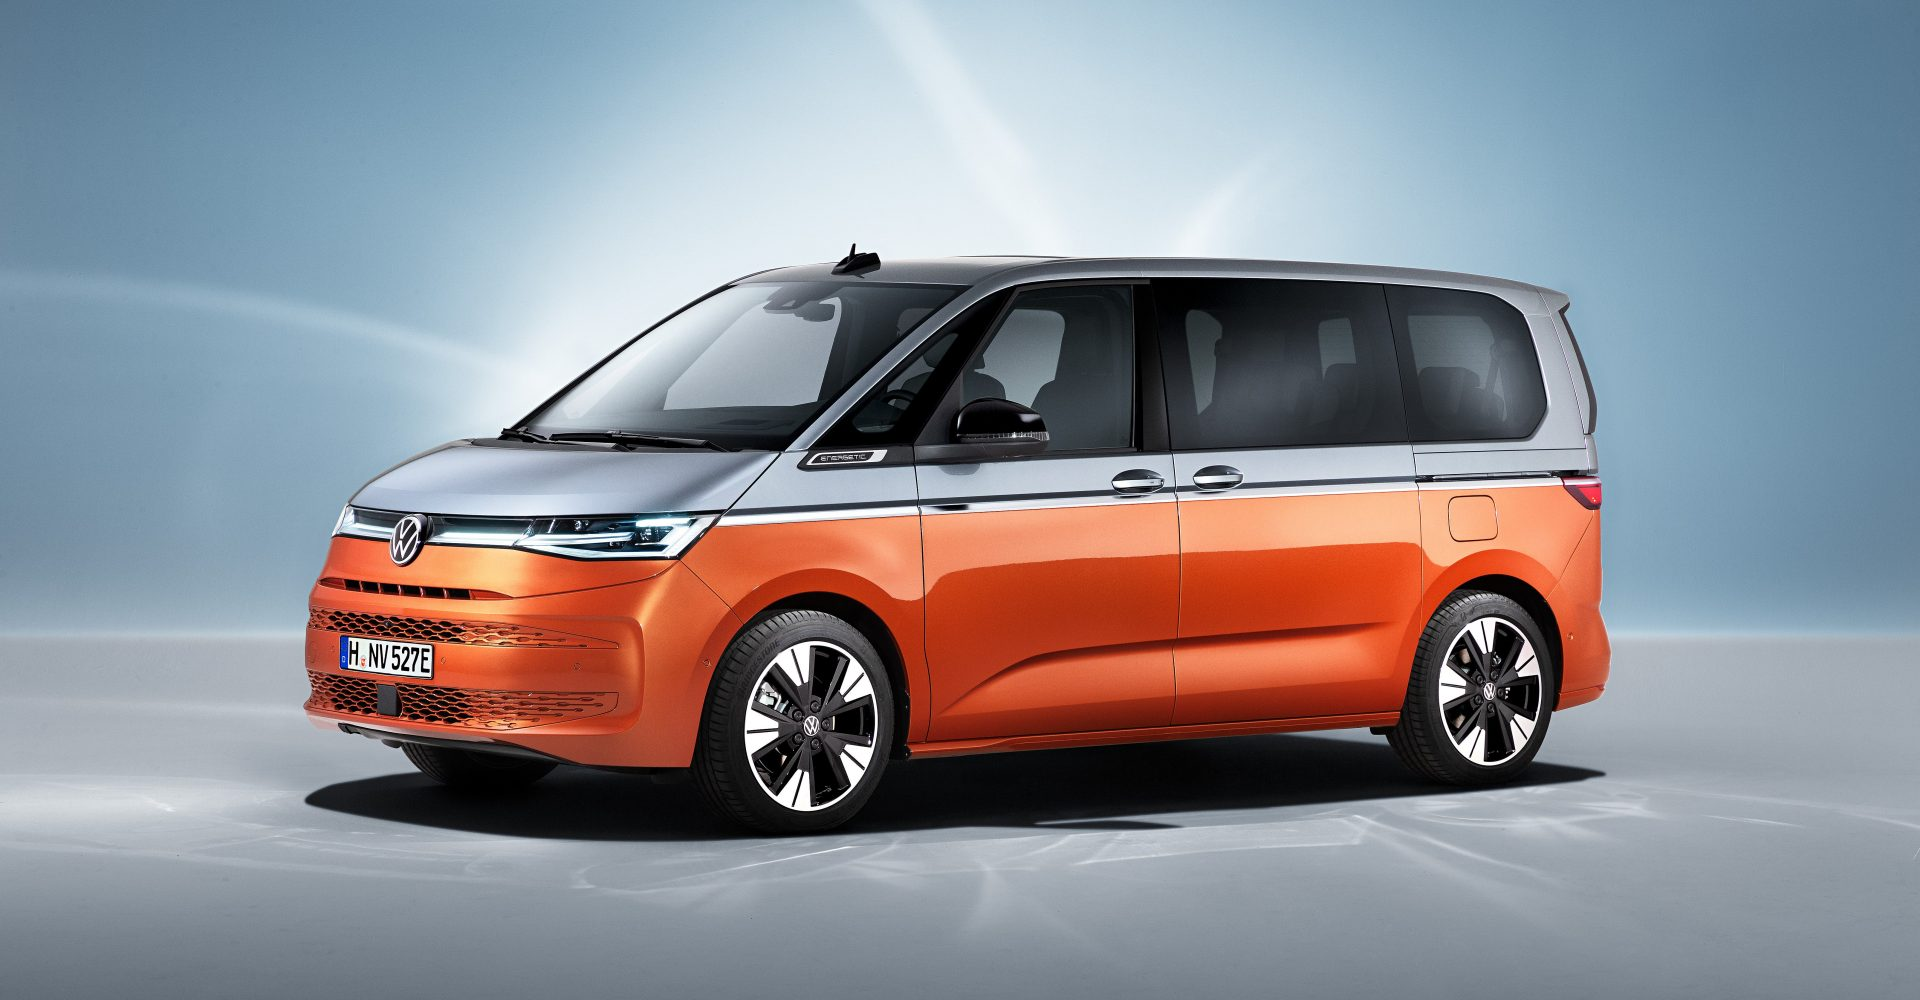 Volkswagen reveals the Multivan as a replacement for the Caravelle